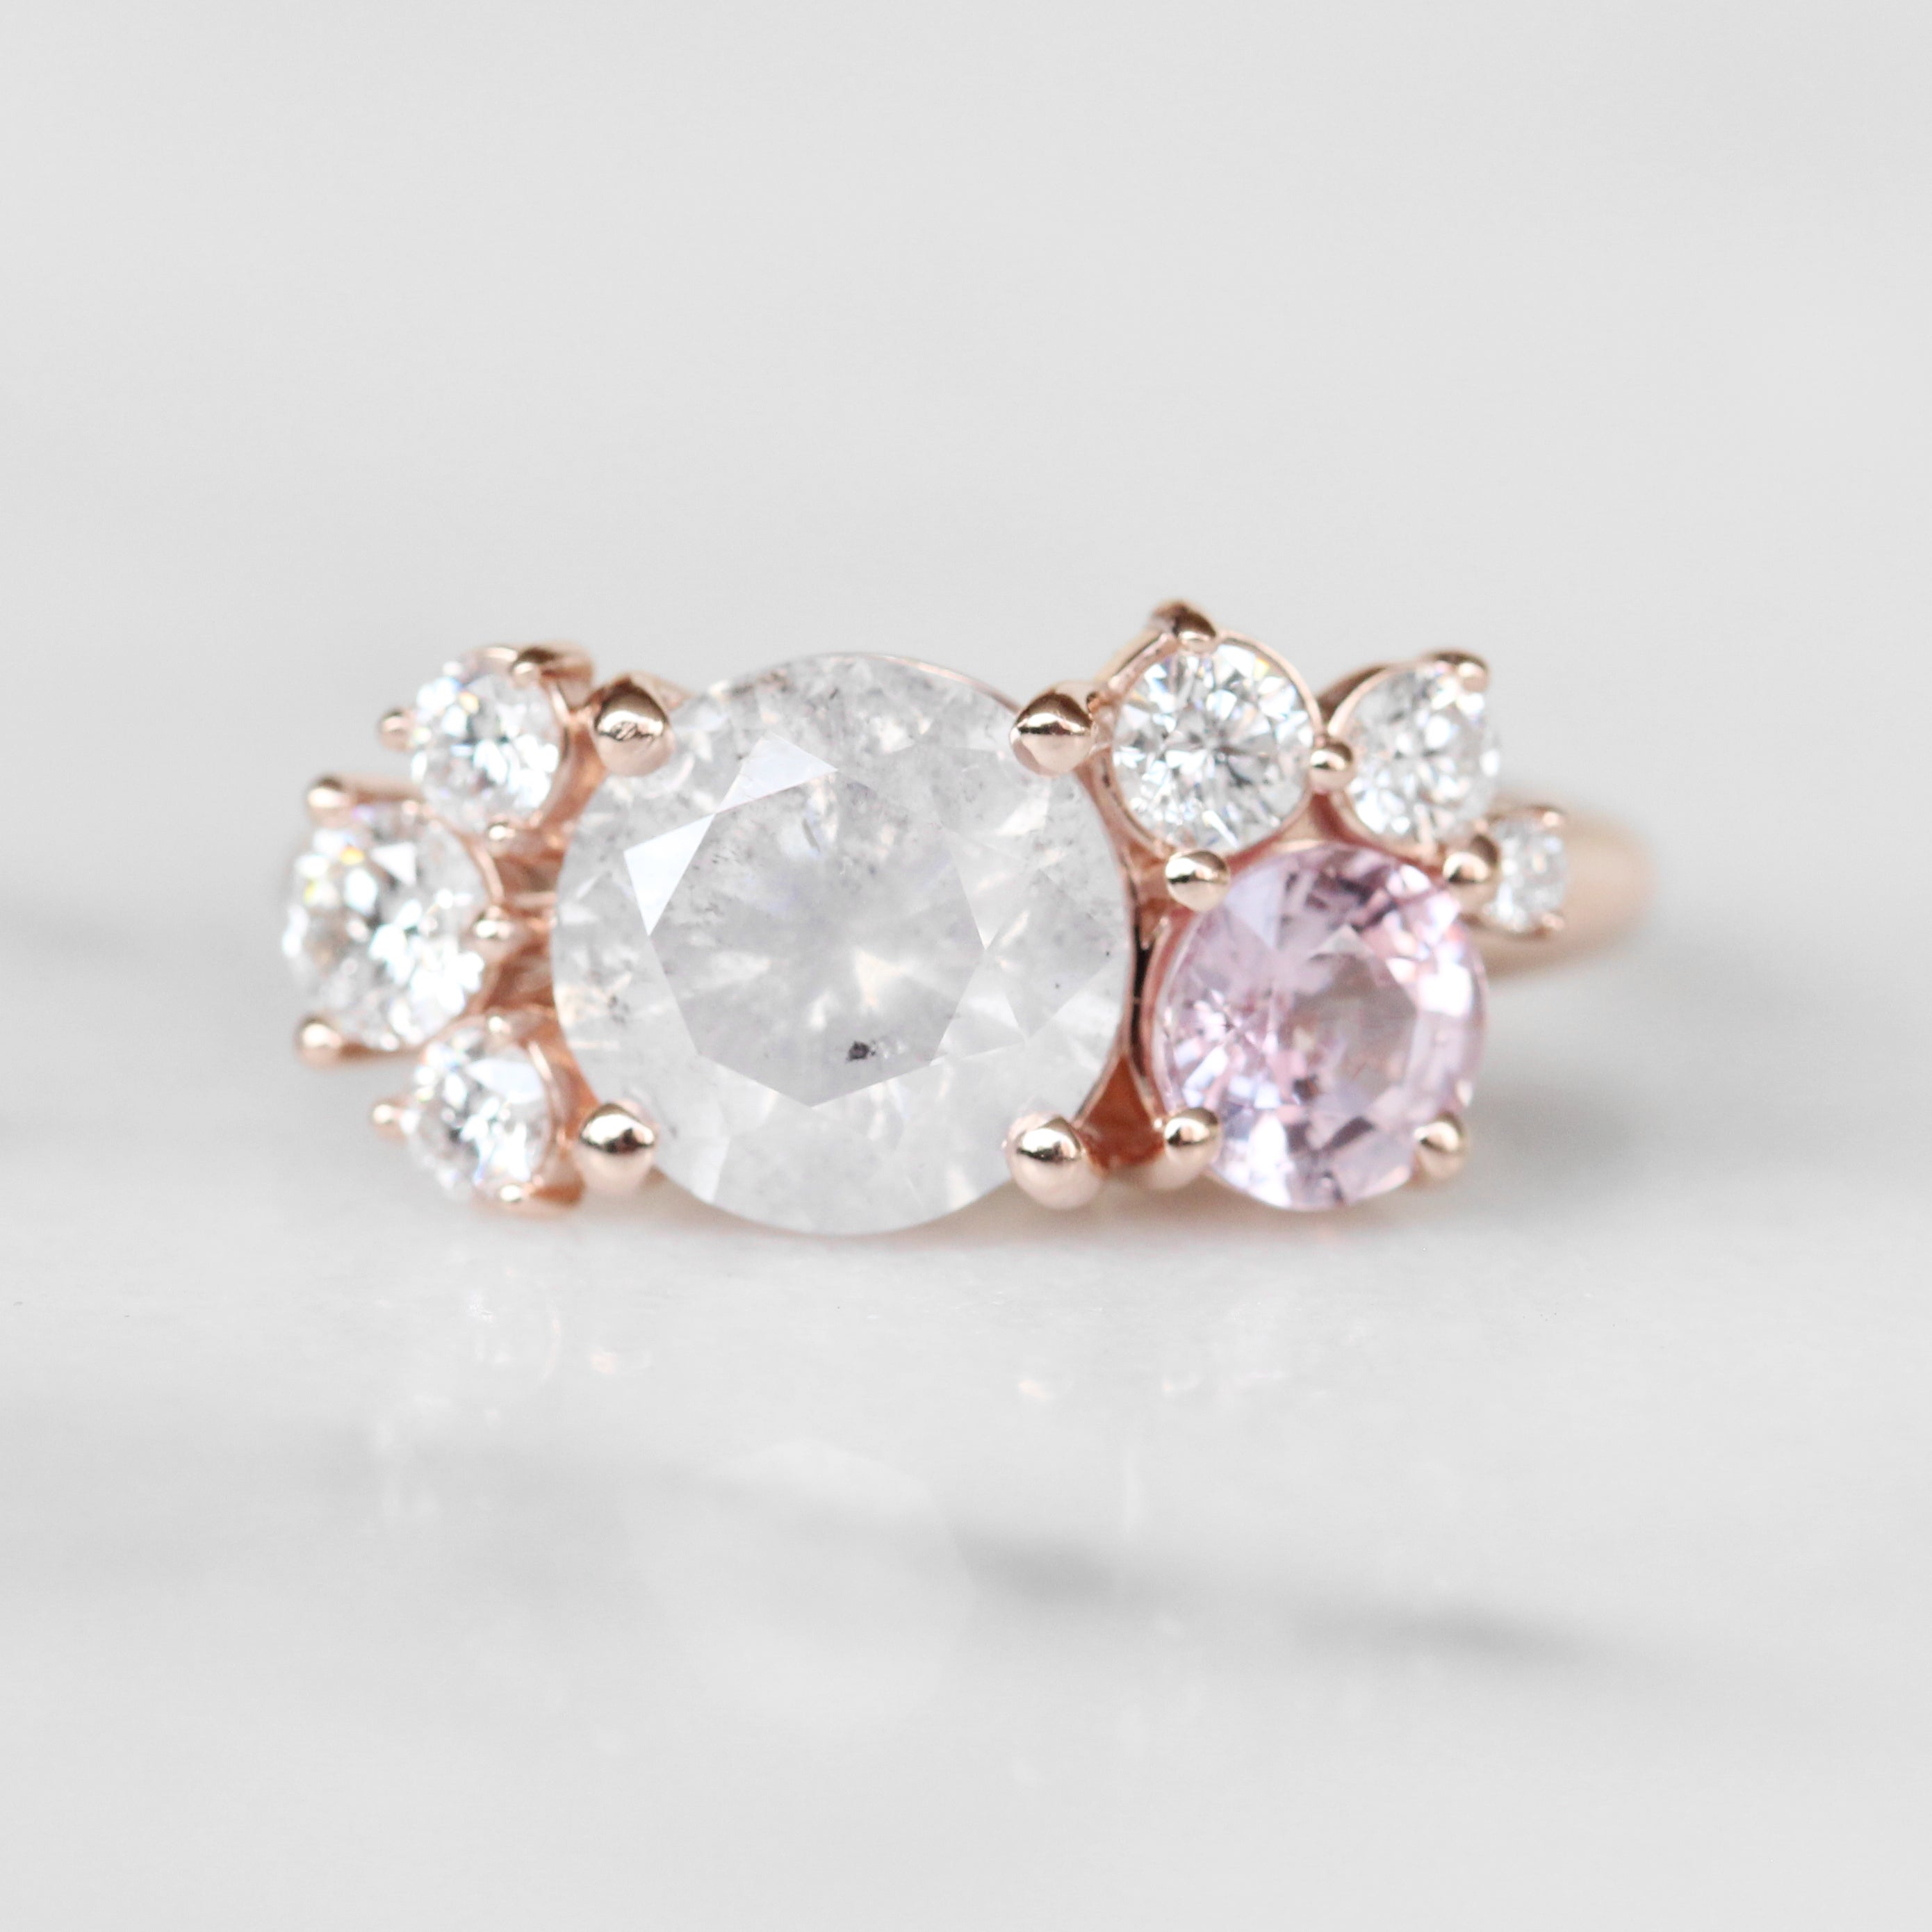 Safian cluster ring with Diamonds and Pink Sapphire in 10k rose gold - ready to size and ship - Salt & Pepper Celestial Diamond Engagement Rings and Wedding Bands  by Midwinter Co.